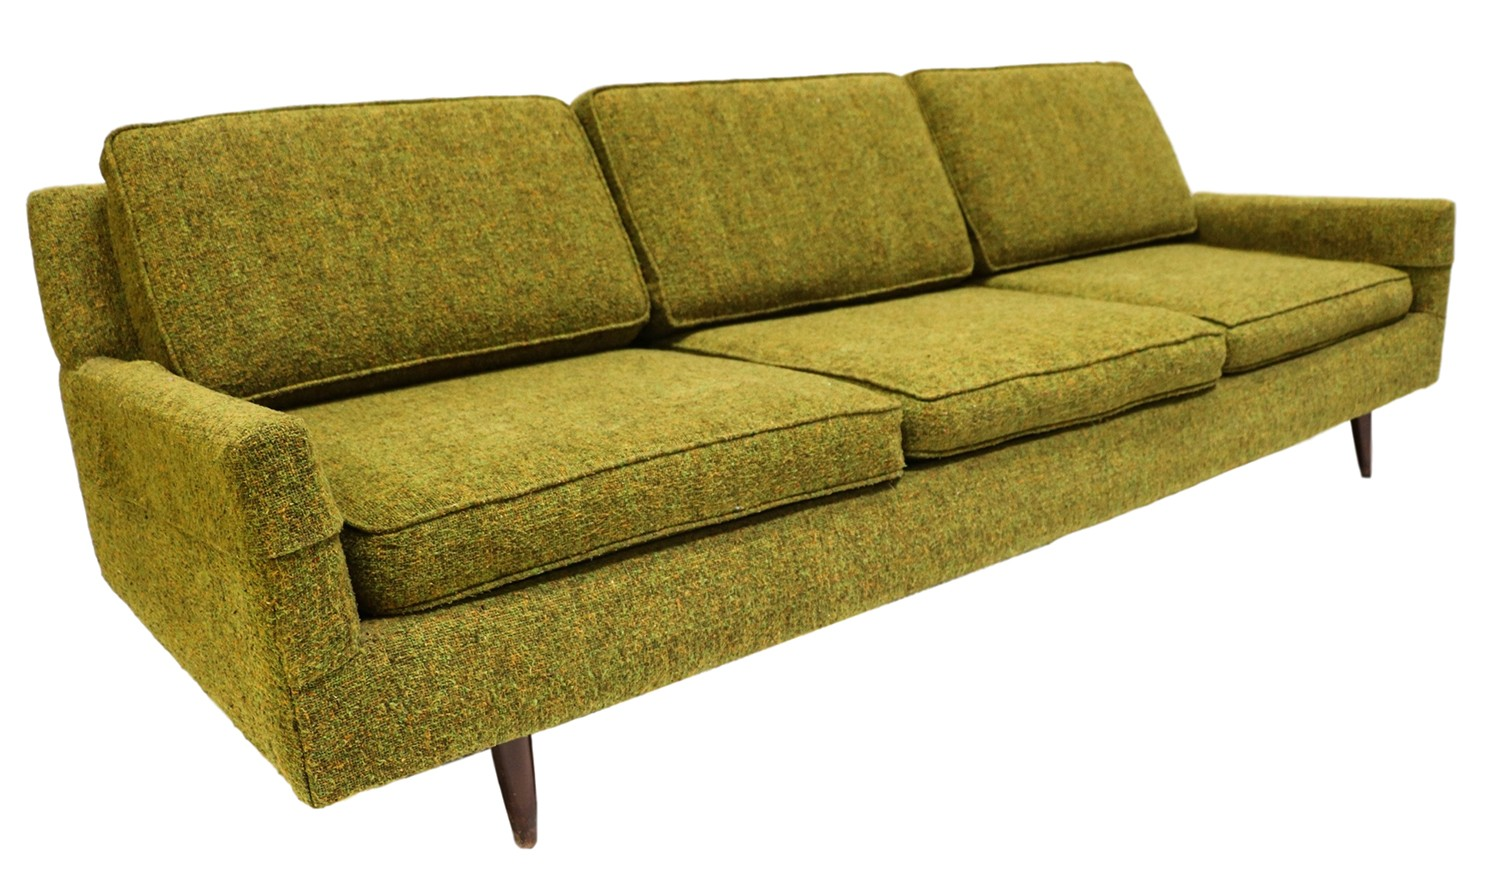 Mid century modern green upholstered sofa for Mid century modern upholstered chair